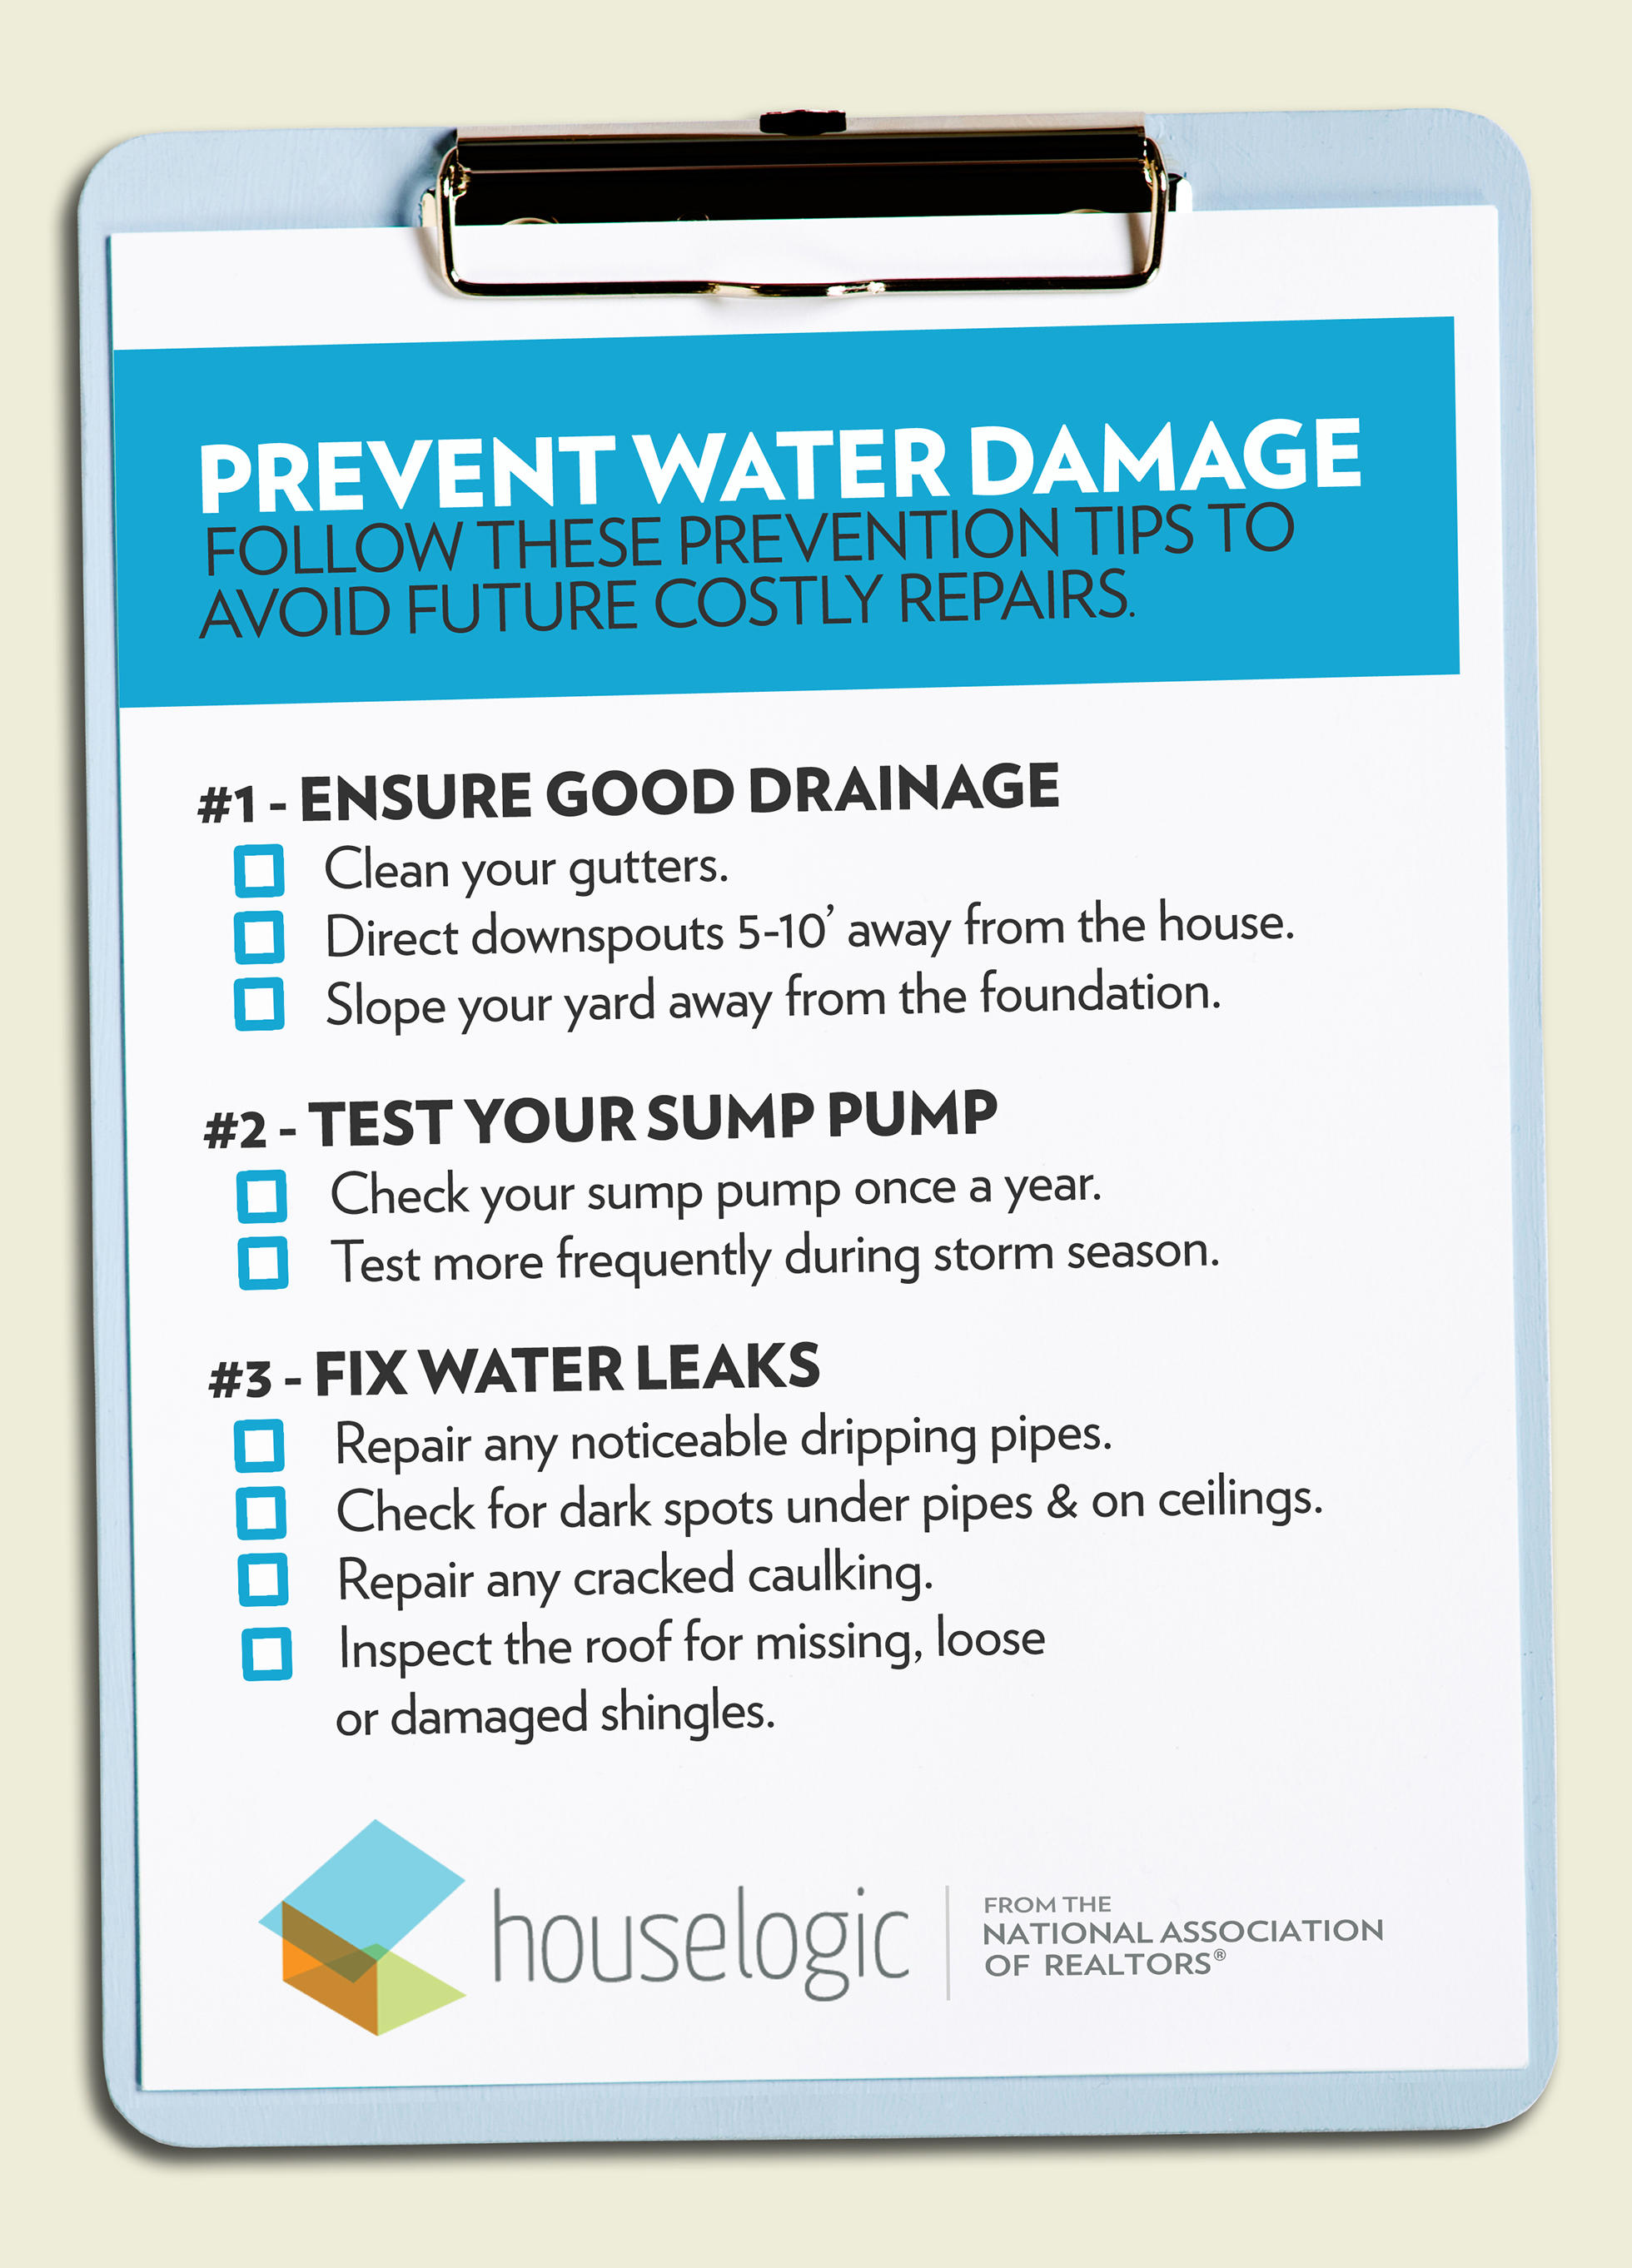 How to Prevent Water Damage | HouseLogic Maintenance Tips